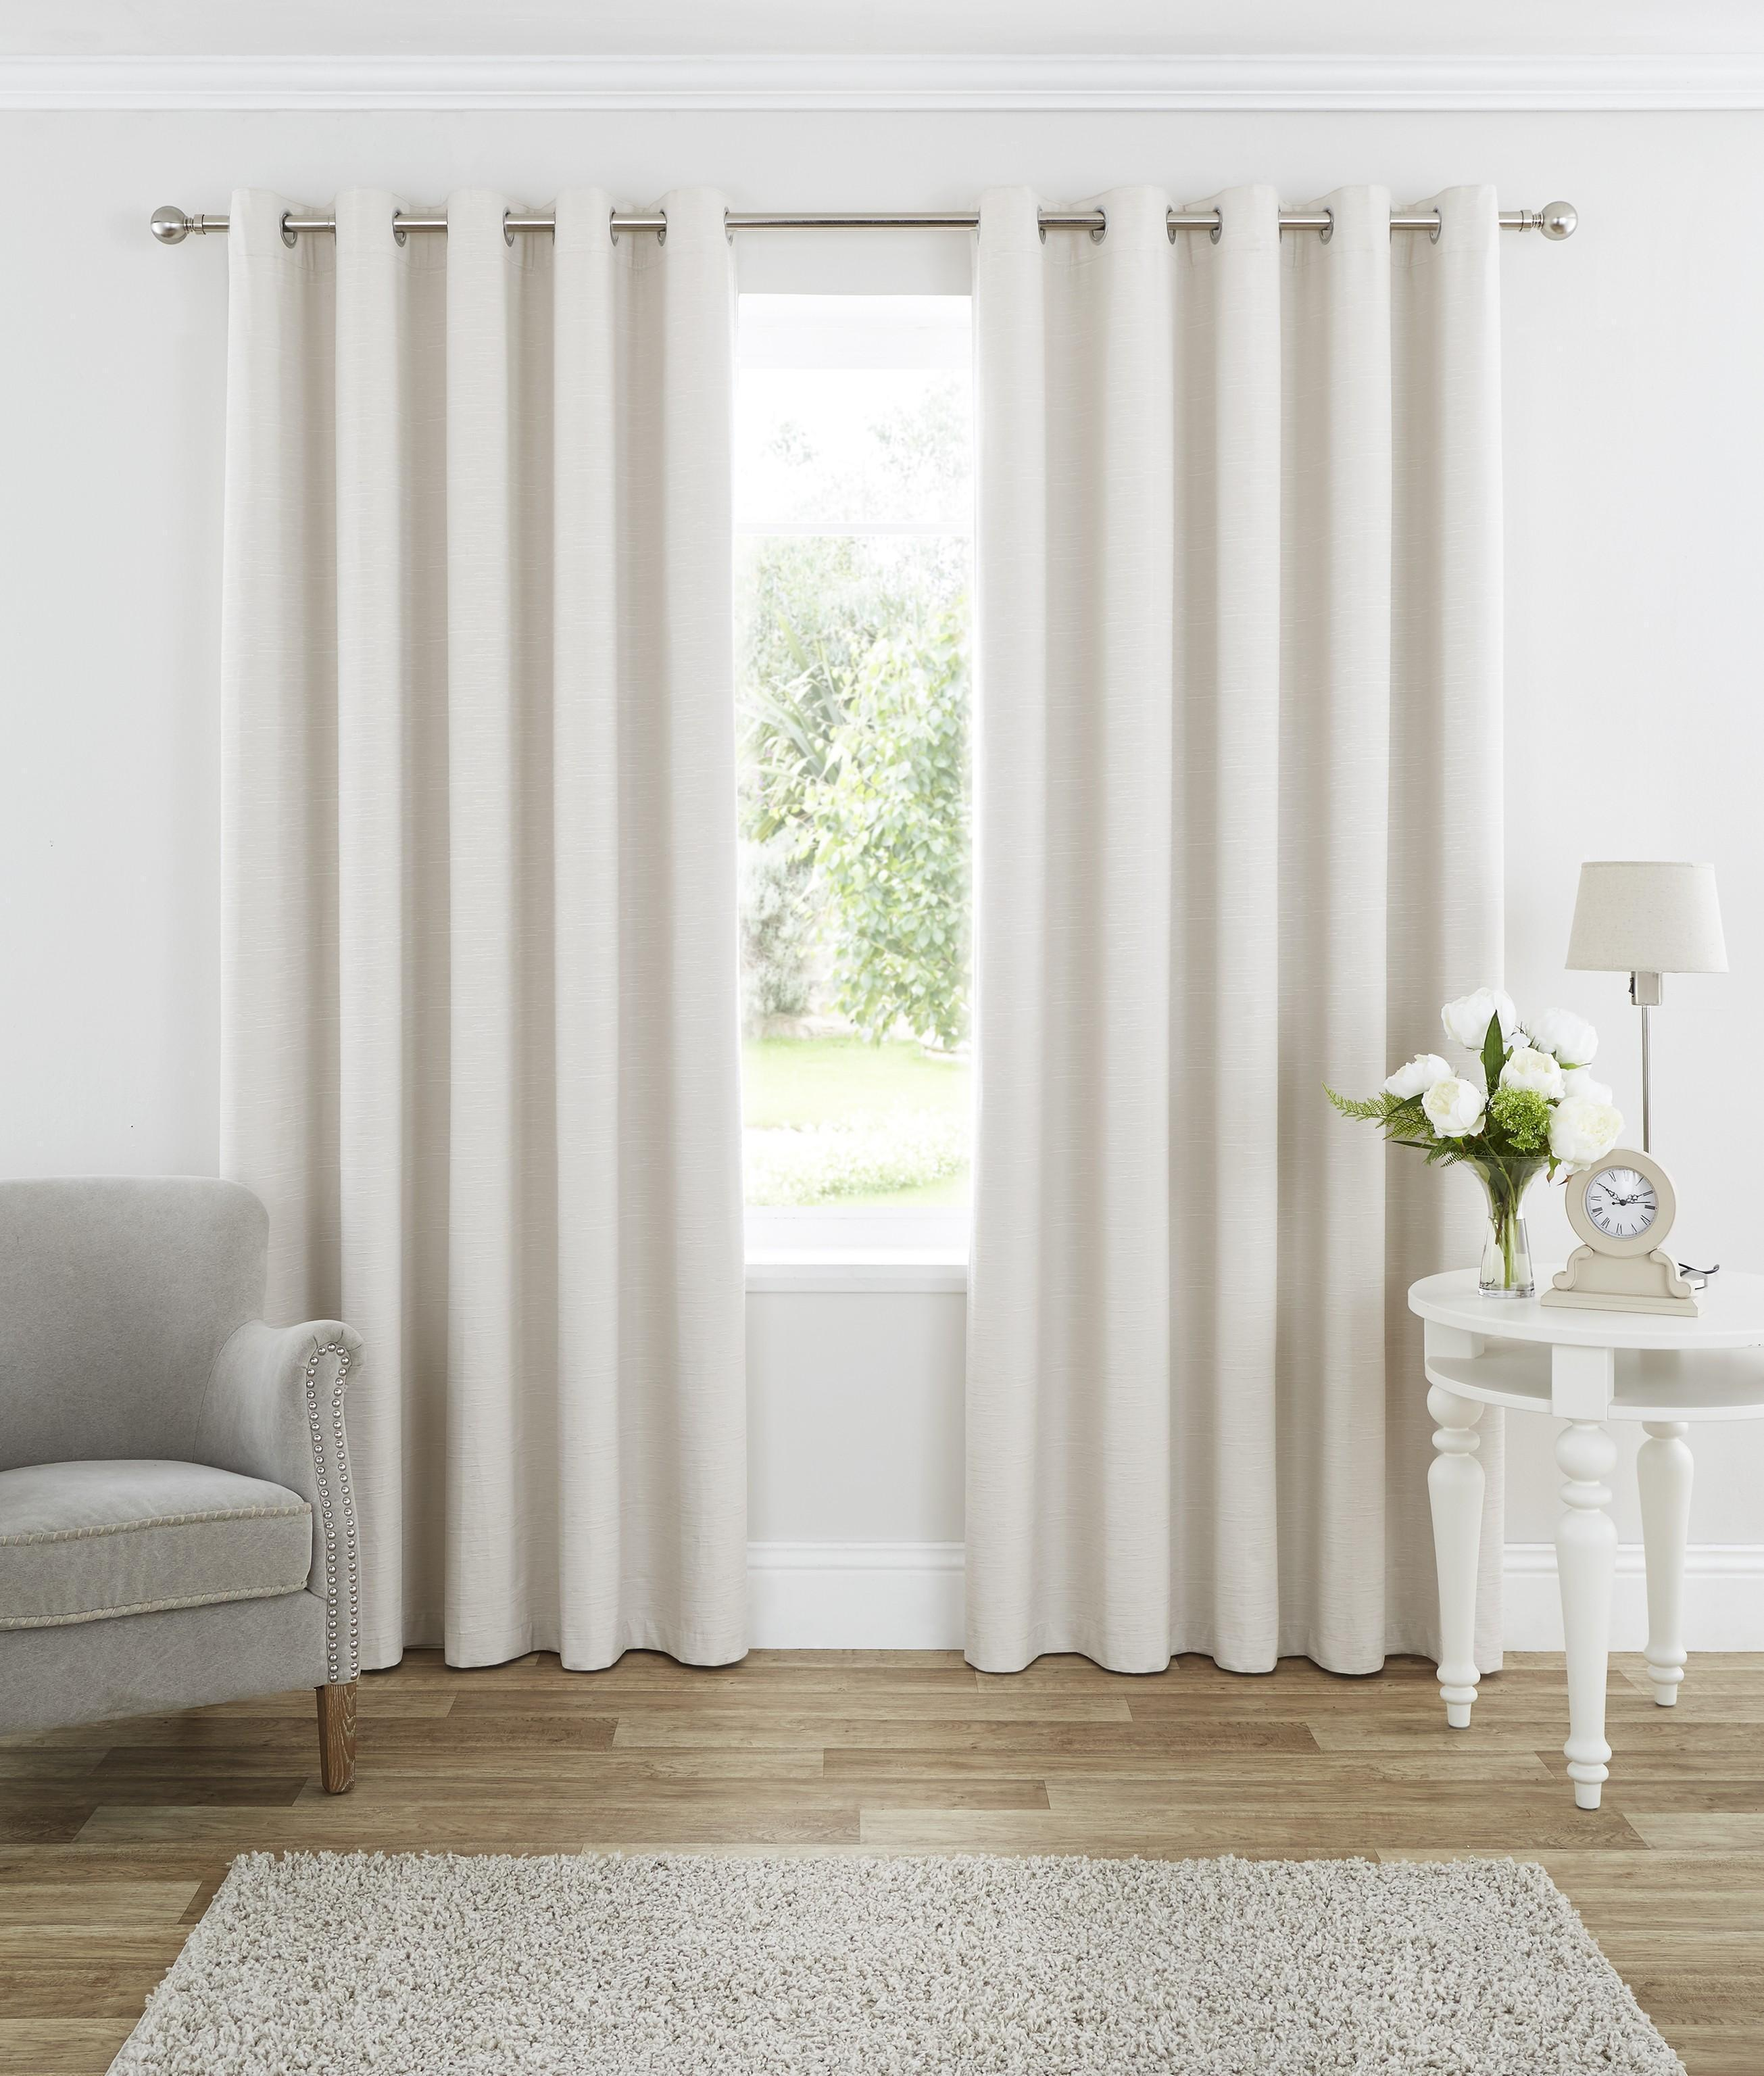 Harmony Blackout Eyelet Curtains Cream | Ponden Homes